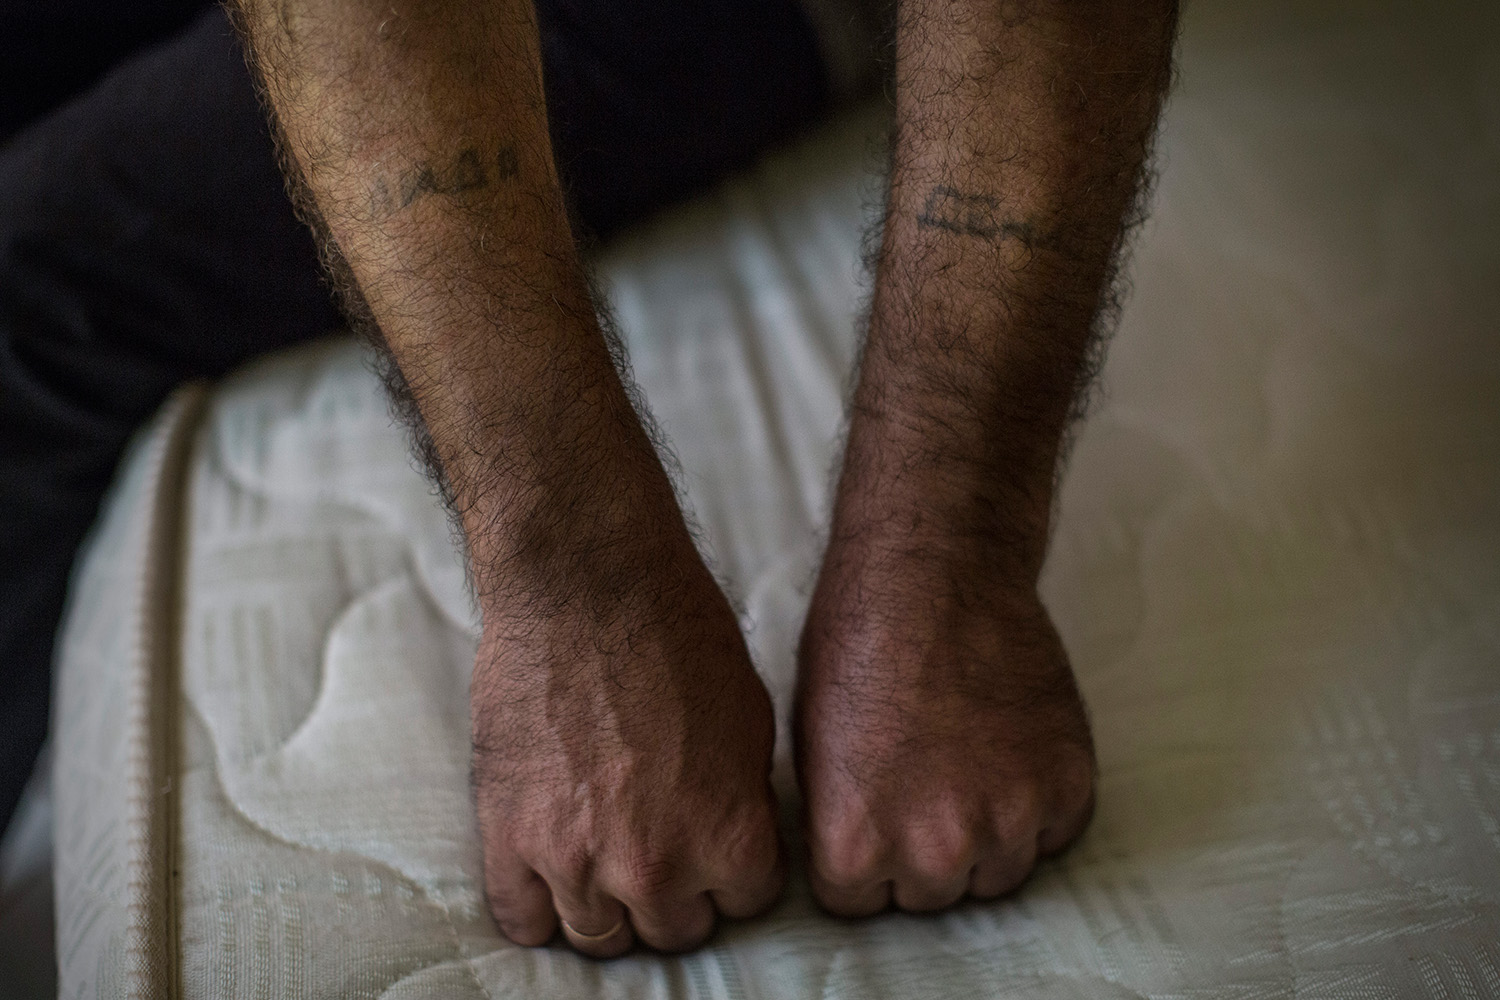 Tammam, a Syrian refugee who had a restaurant in Homs shows his tattoos with the names of his wife and his son he made himself. They took different directions to flee their homeland. The only wish of Tammam is to go back in a more safe Syria. Mamoudzou, Mayotte, France. Tuesday, June 16, 2015